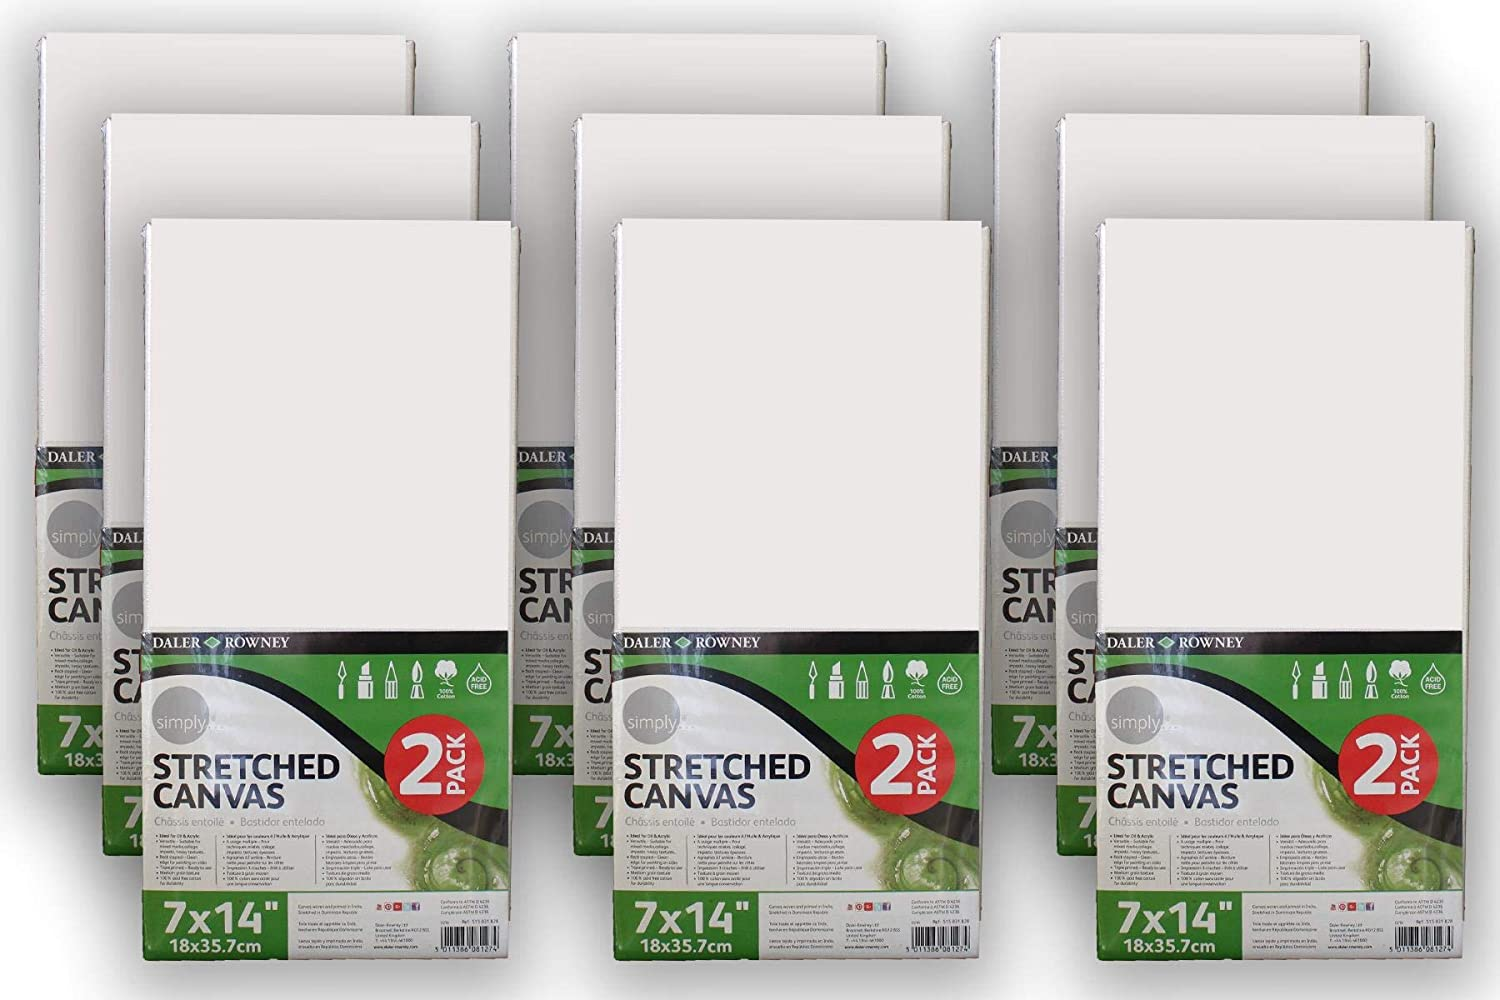 Thorness 9 Packs of 2 Daler Rowney Stretched Canvases 18cm x 35.7cm